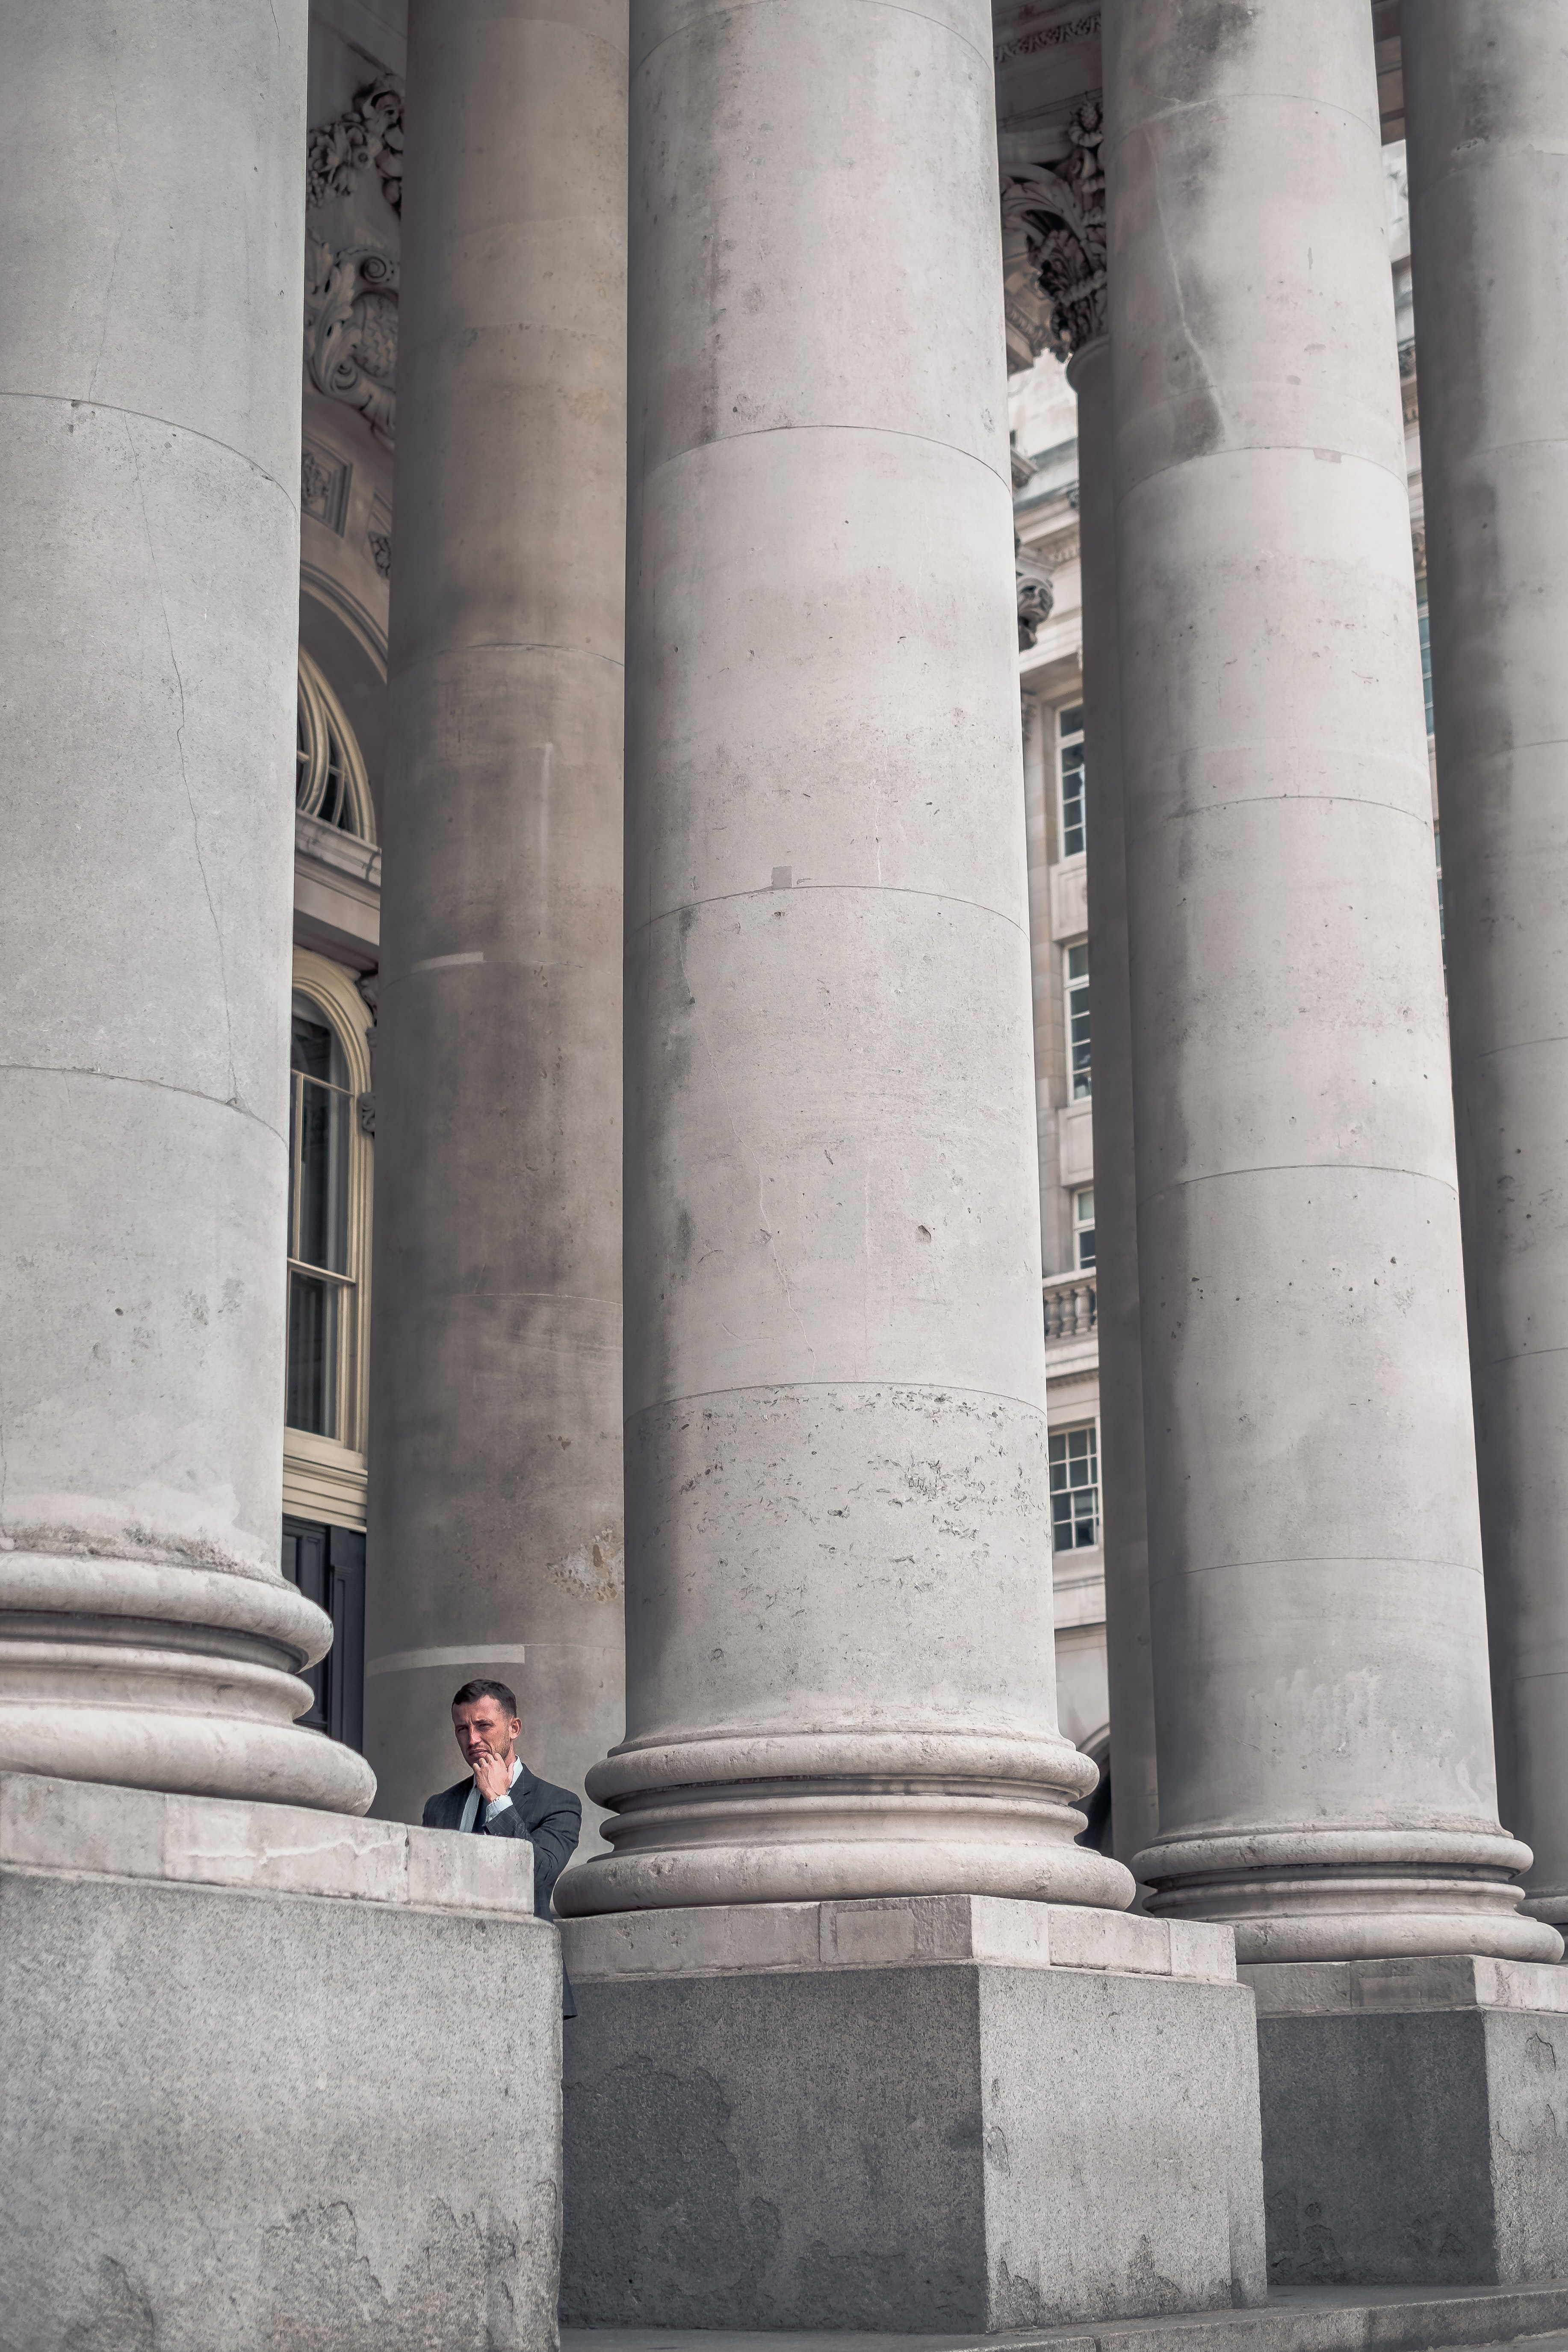 A man in a suit standing near the tall columns at the entrance to the London Stock Exchange